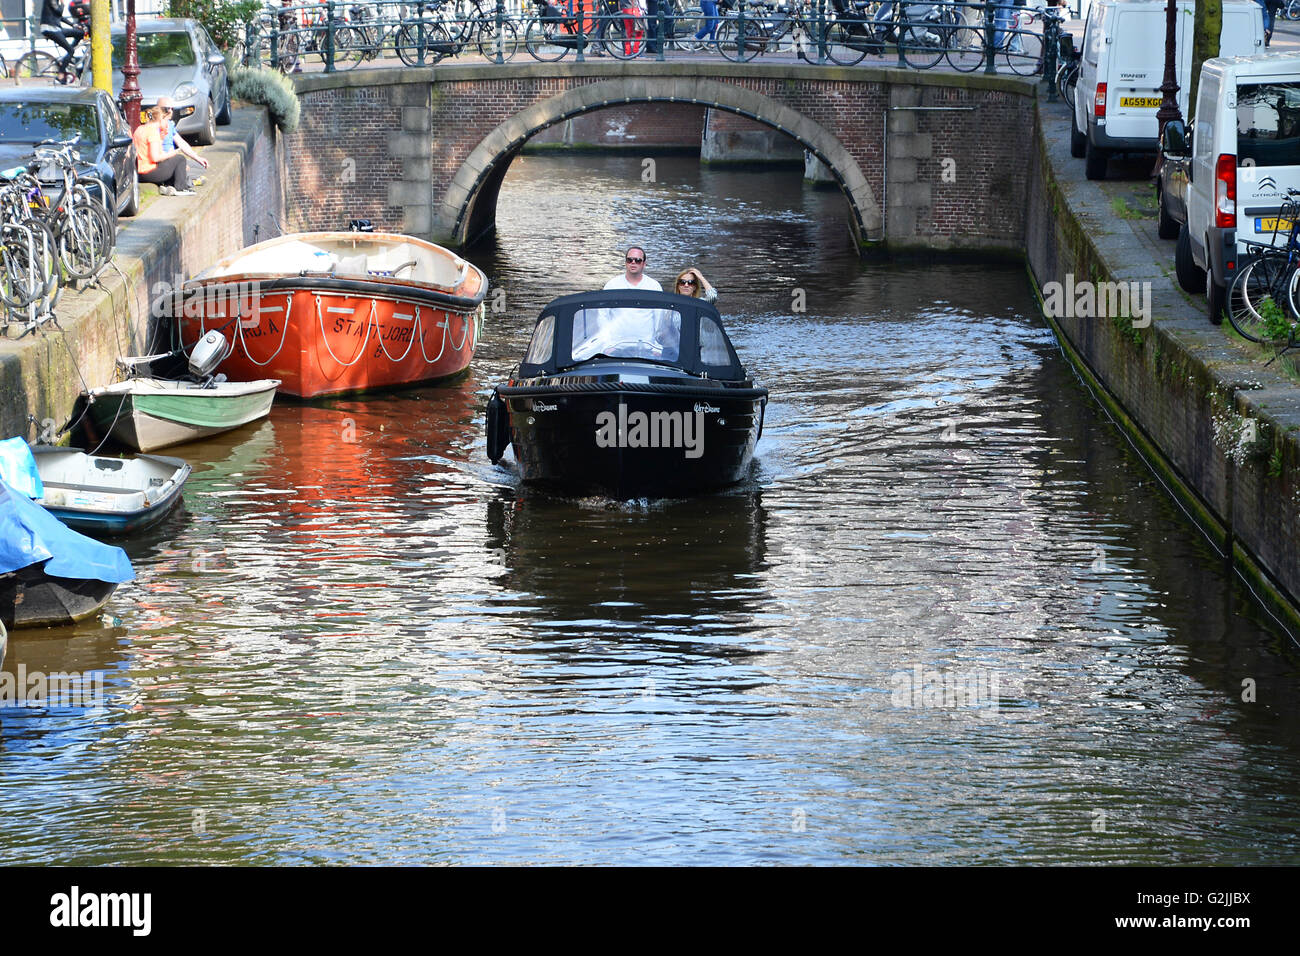 couple navigate boat on canal under bridge in central Amsterdam city. - Stock Image